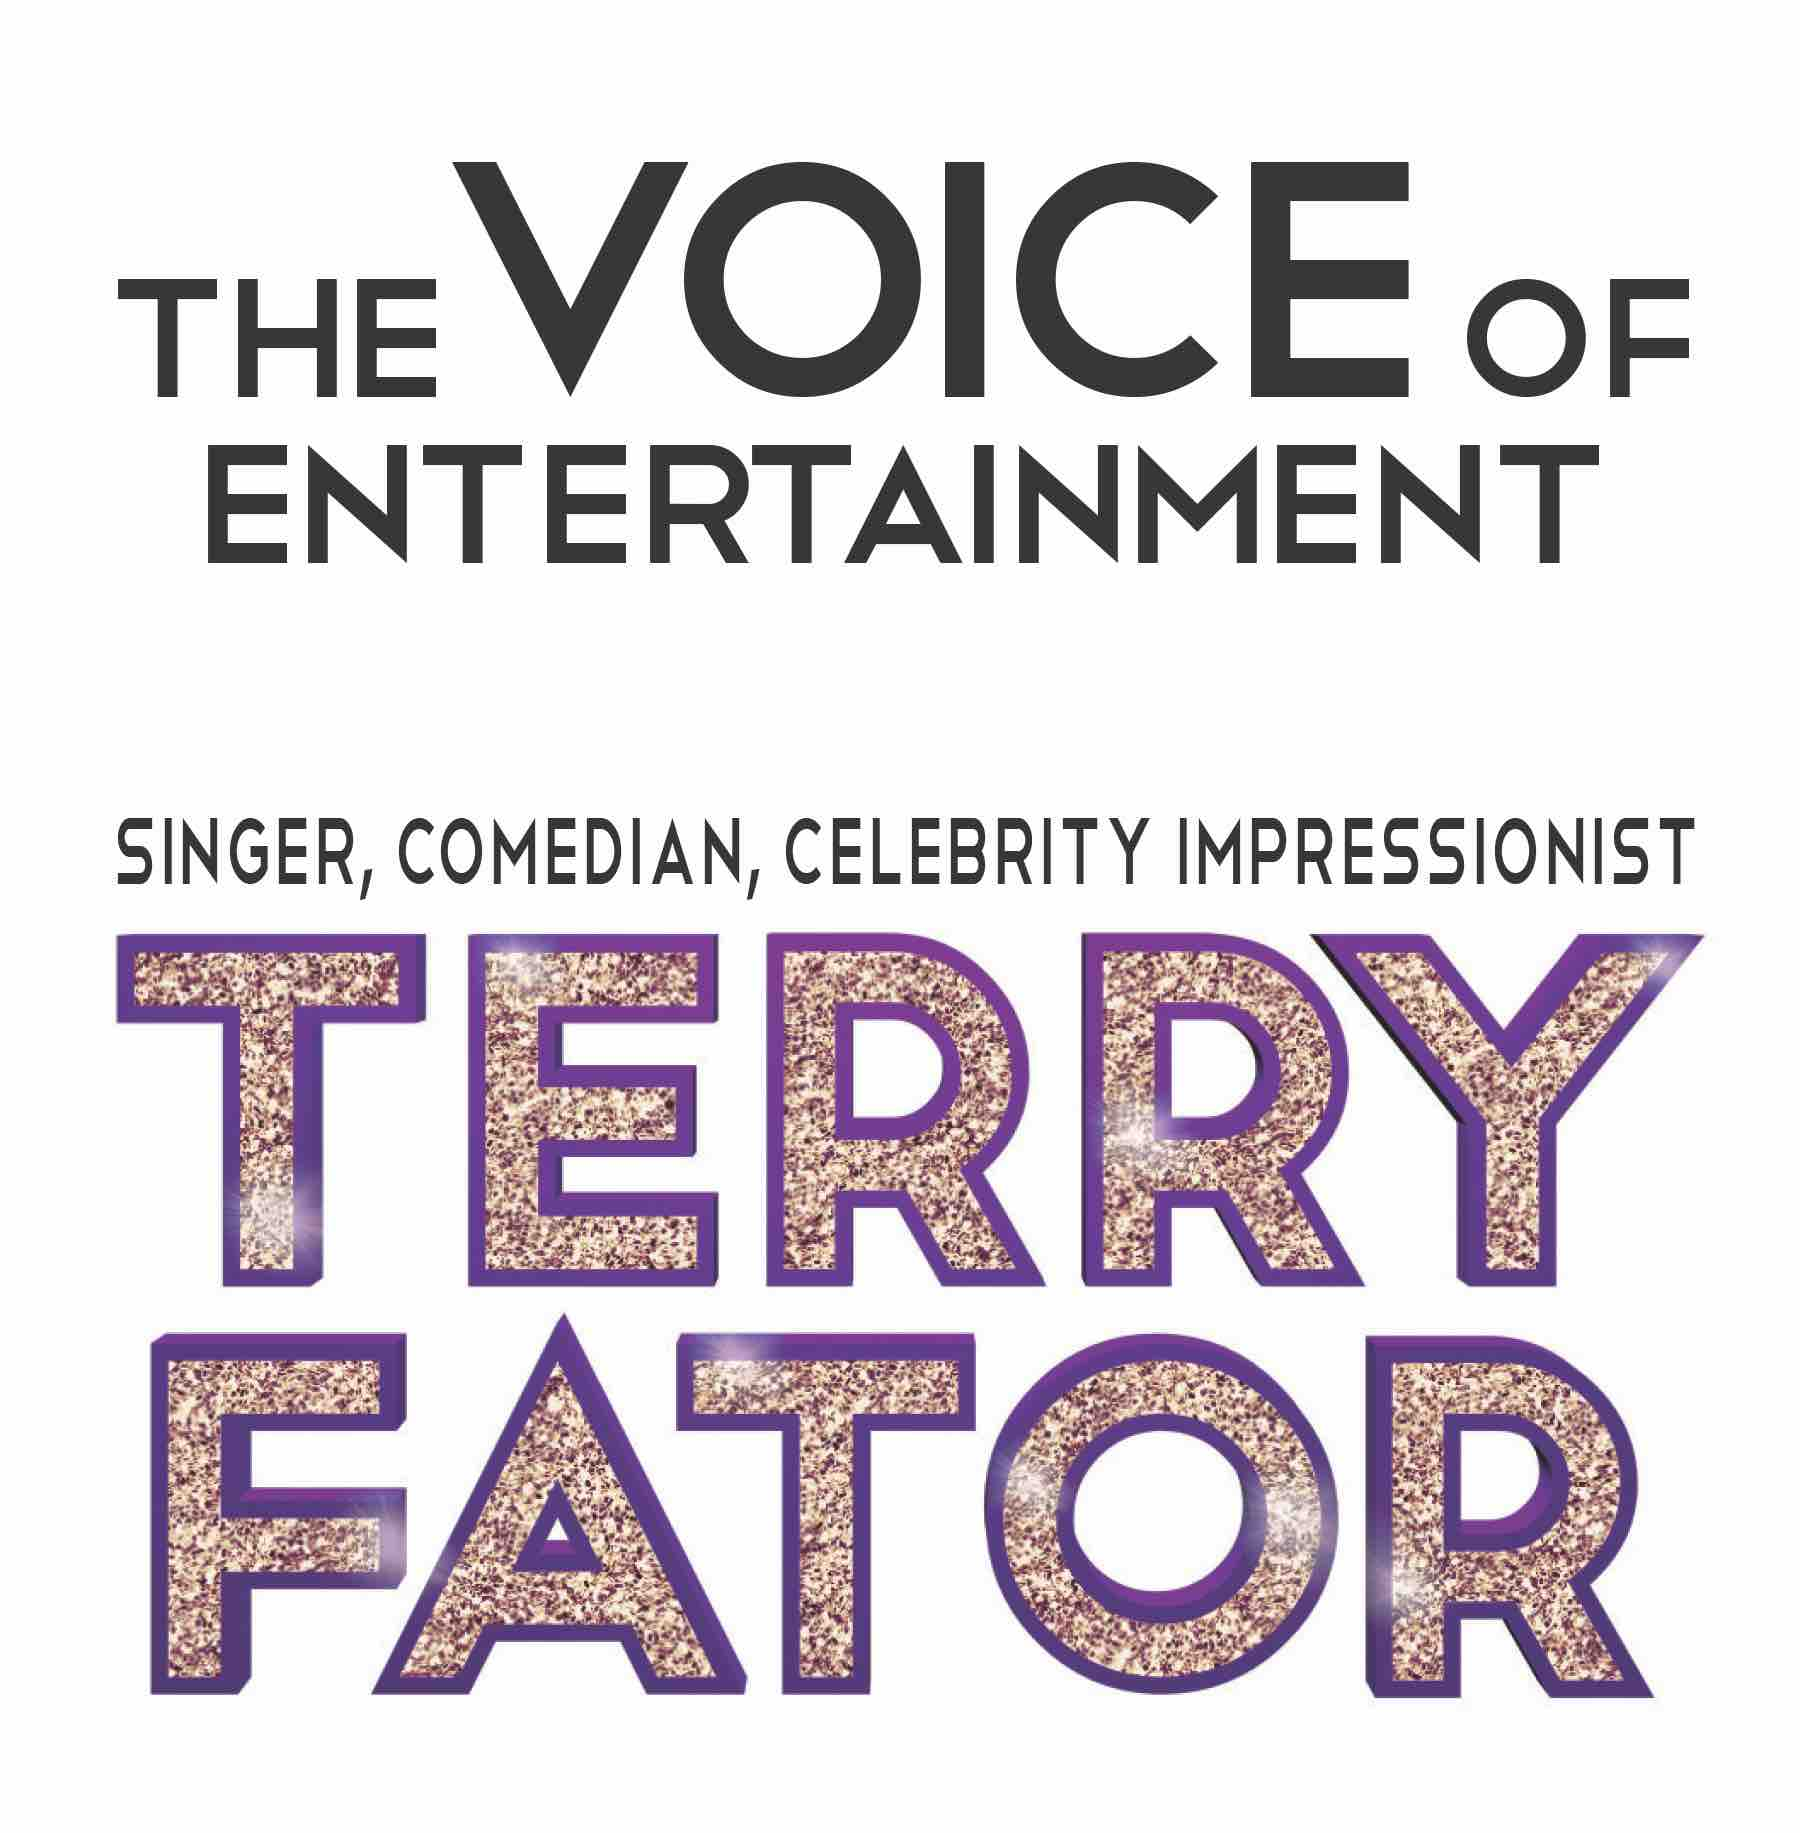 The VOICE of Entertainment